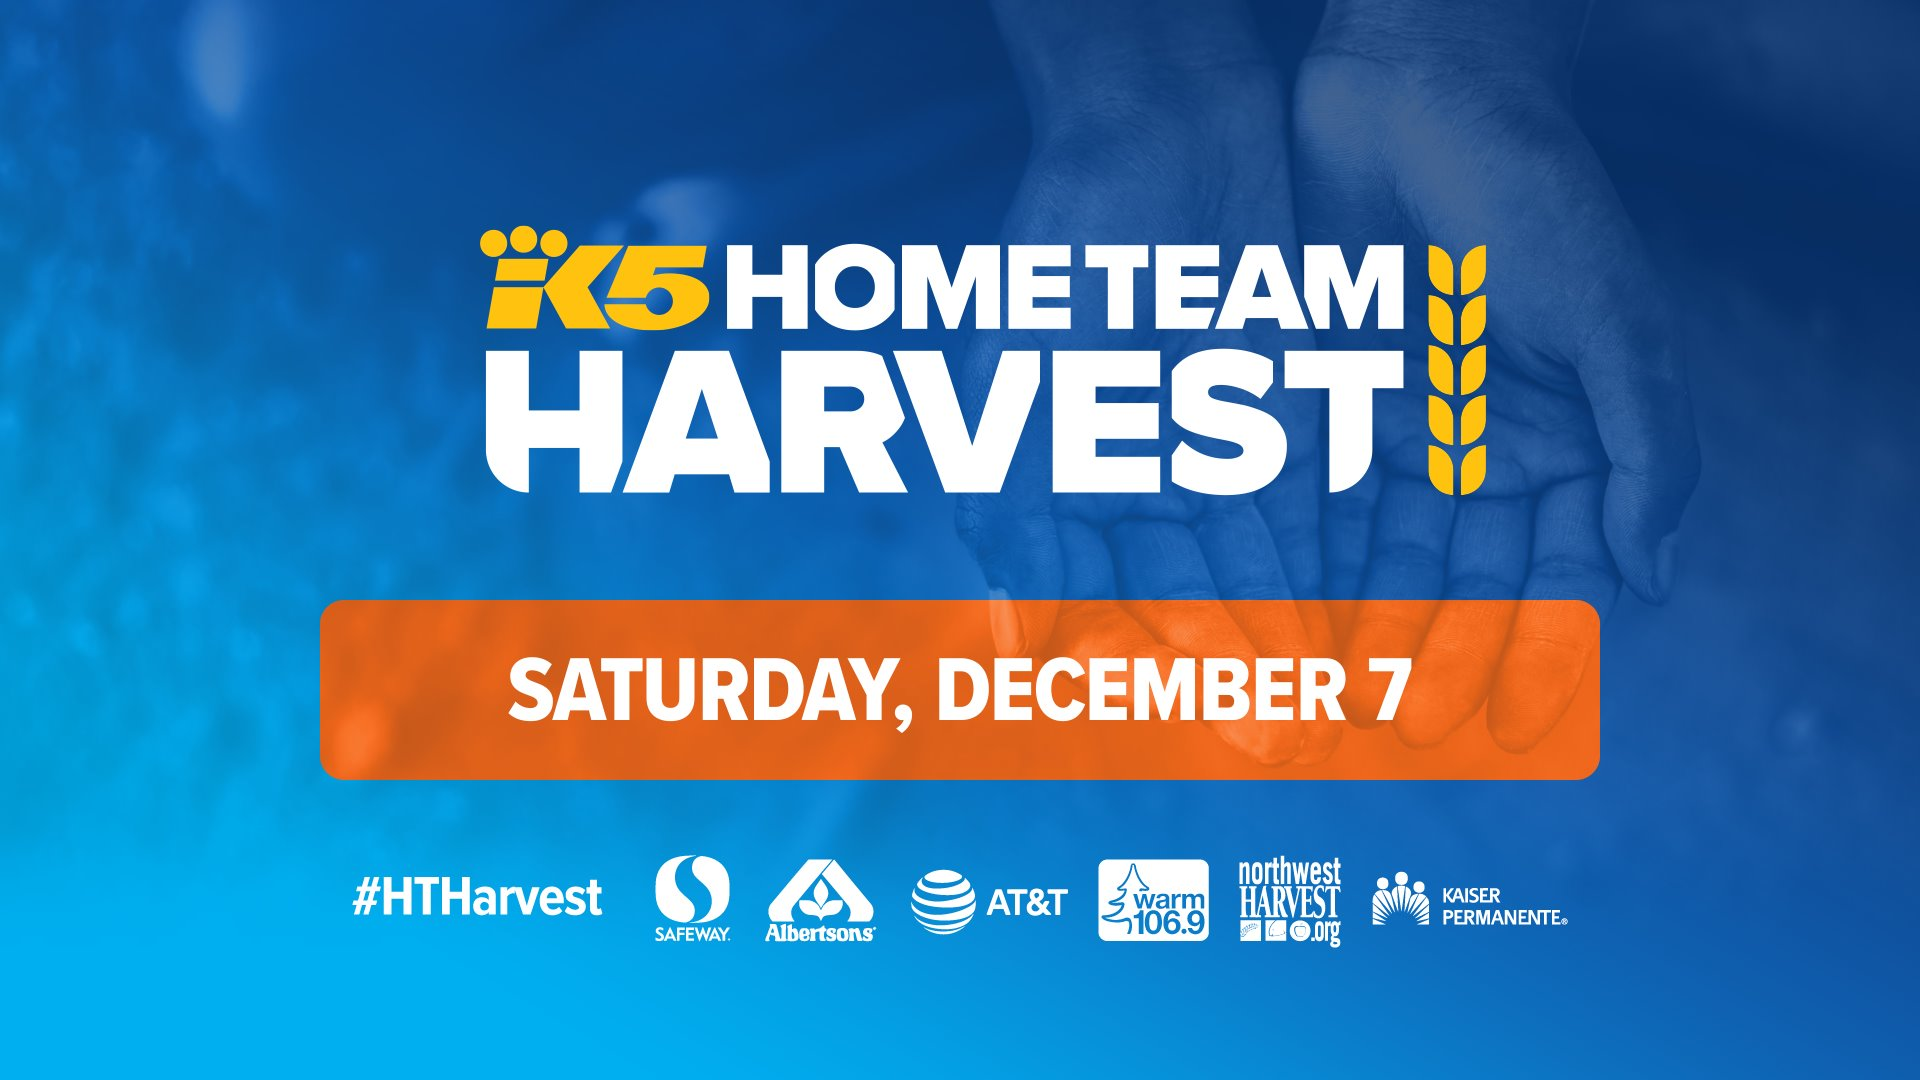 King5 Home Team Harvest Issaquah Highlands